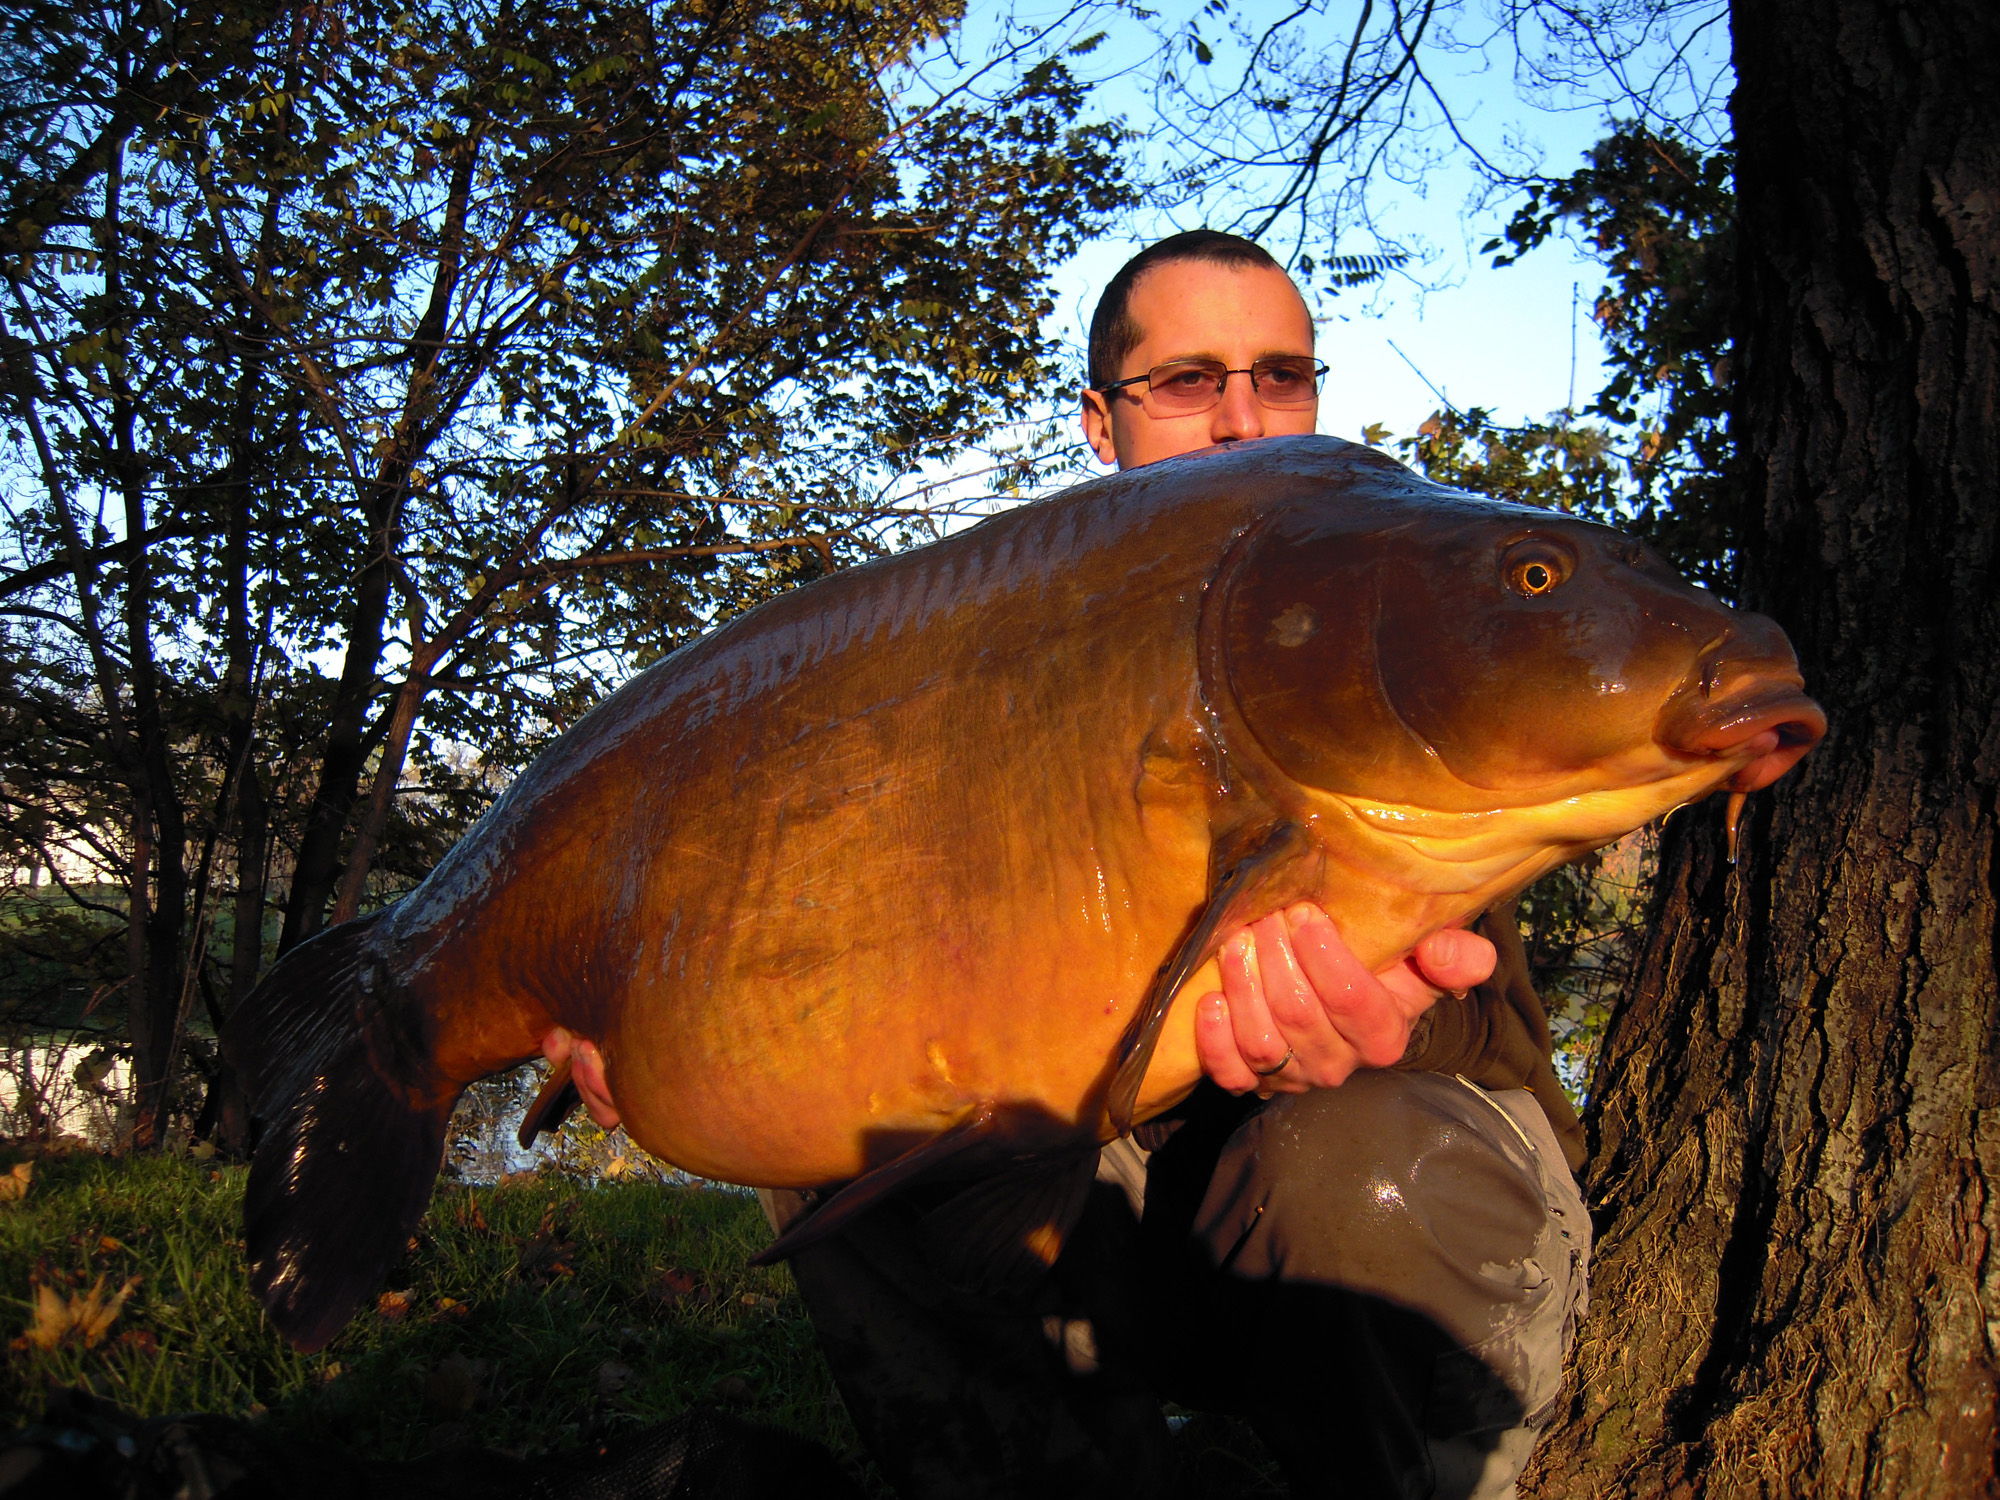 http://starbaits.com/fichiers/images/team/gallery/COLLET_Jerome/7 Jérôme Collet.jpg